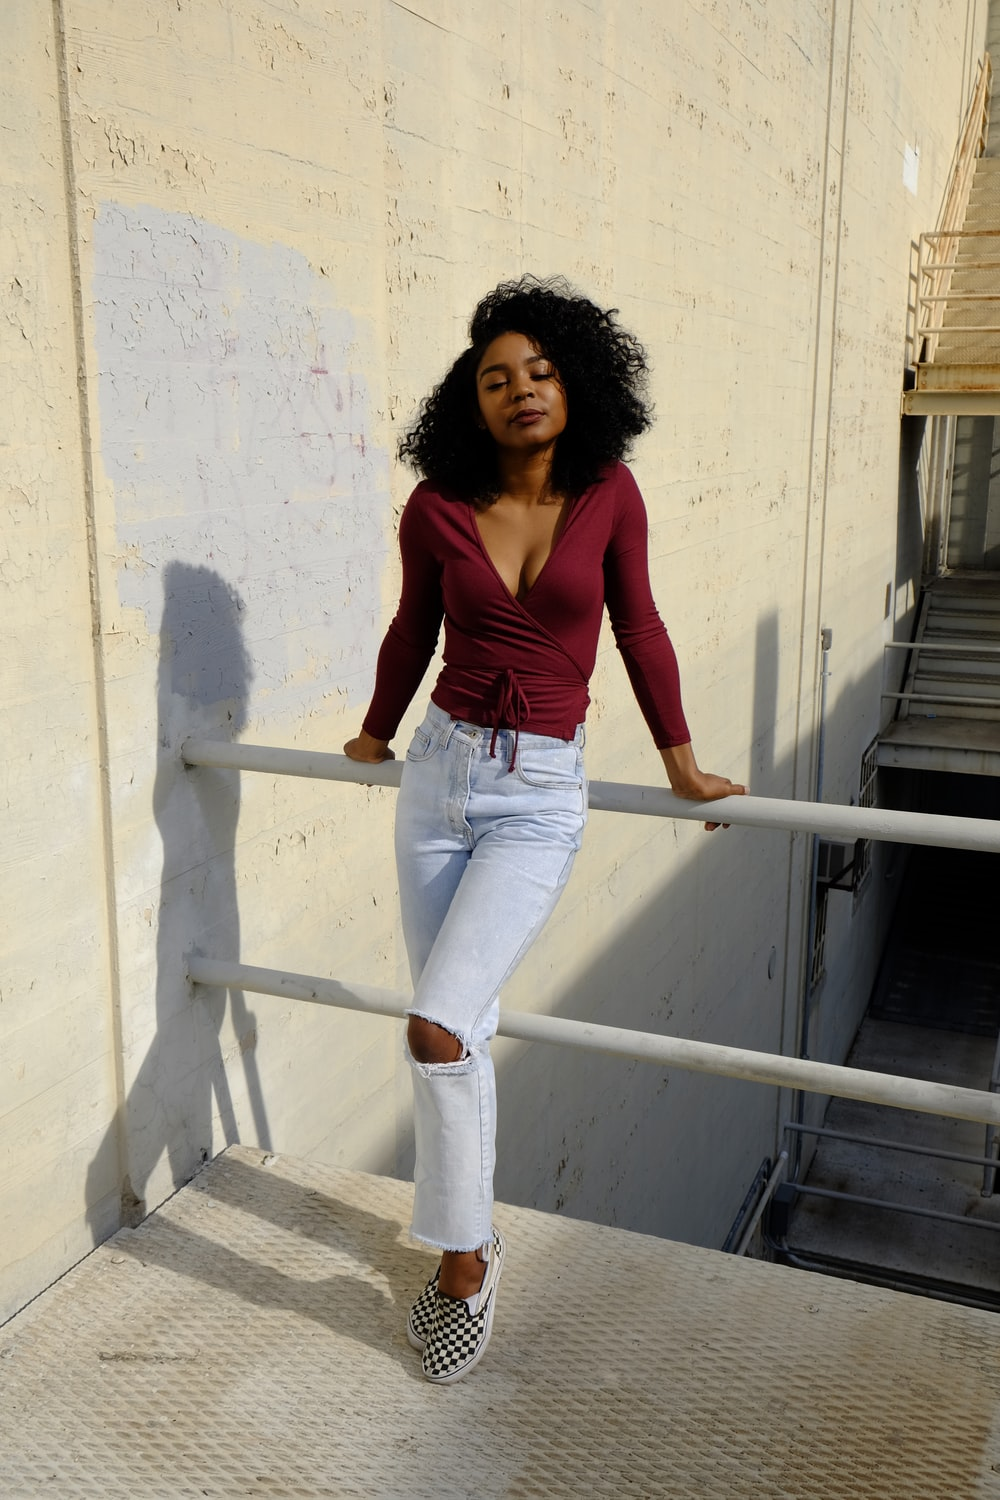 woman in red tank top and blue denim jeans standing on white concrete stairs